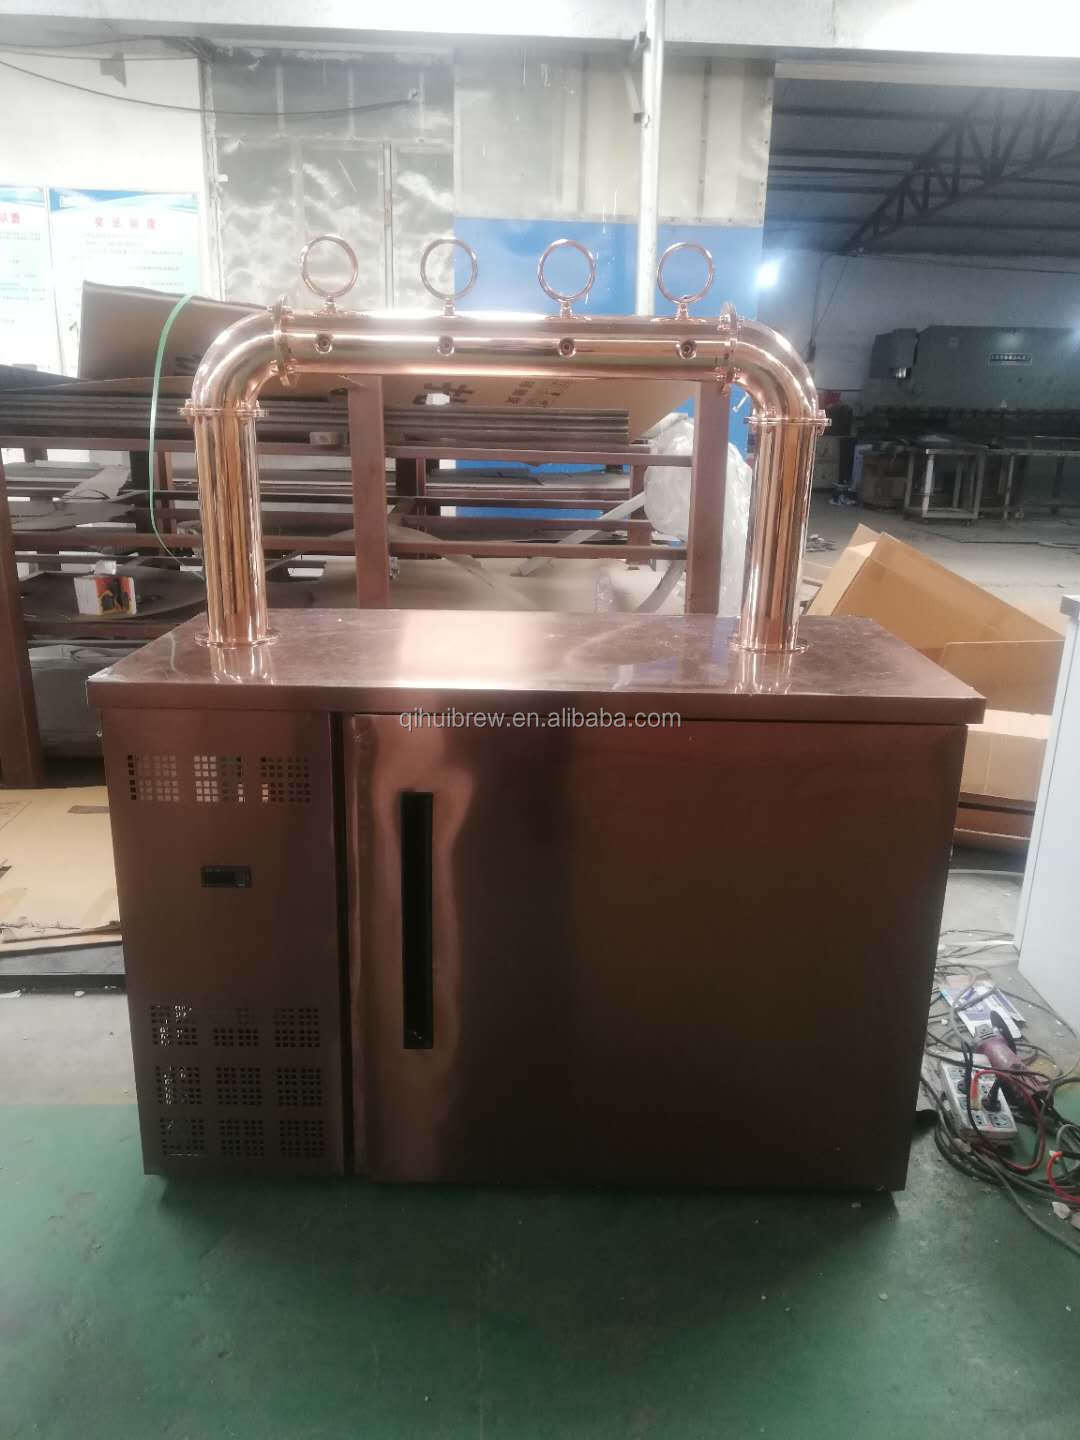 Red Copper 2 4 6 head tap beer kegerator